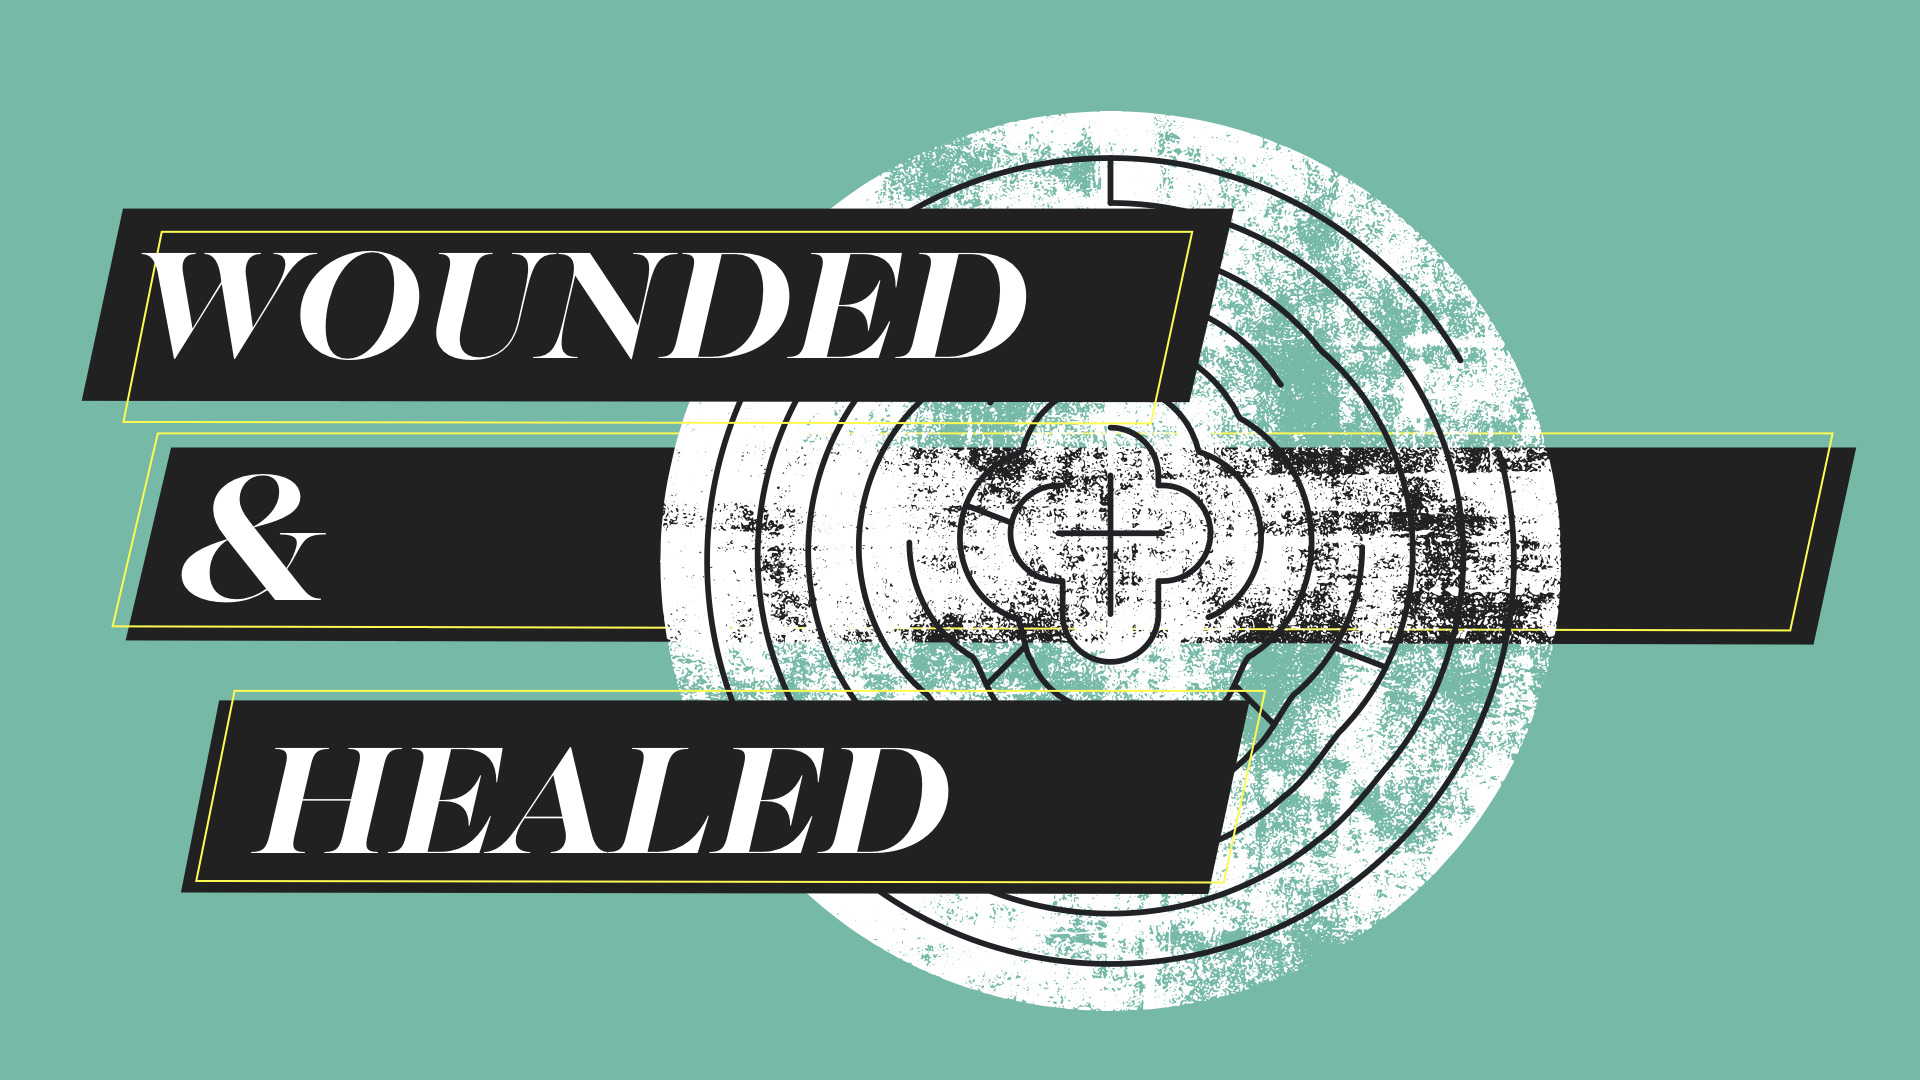 Wounded and Healed title image.001.jpeg